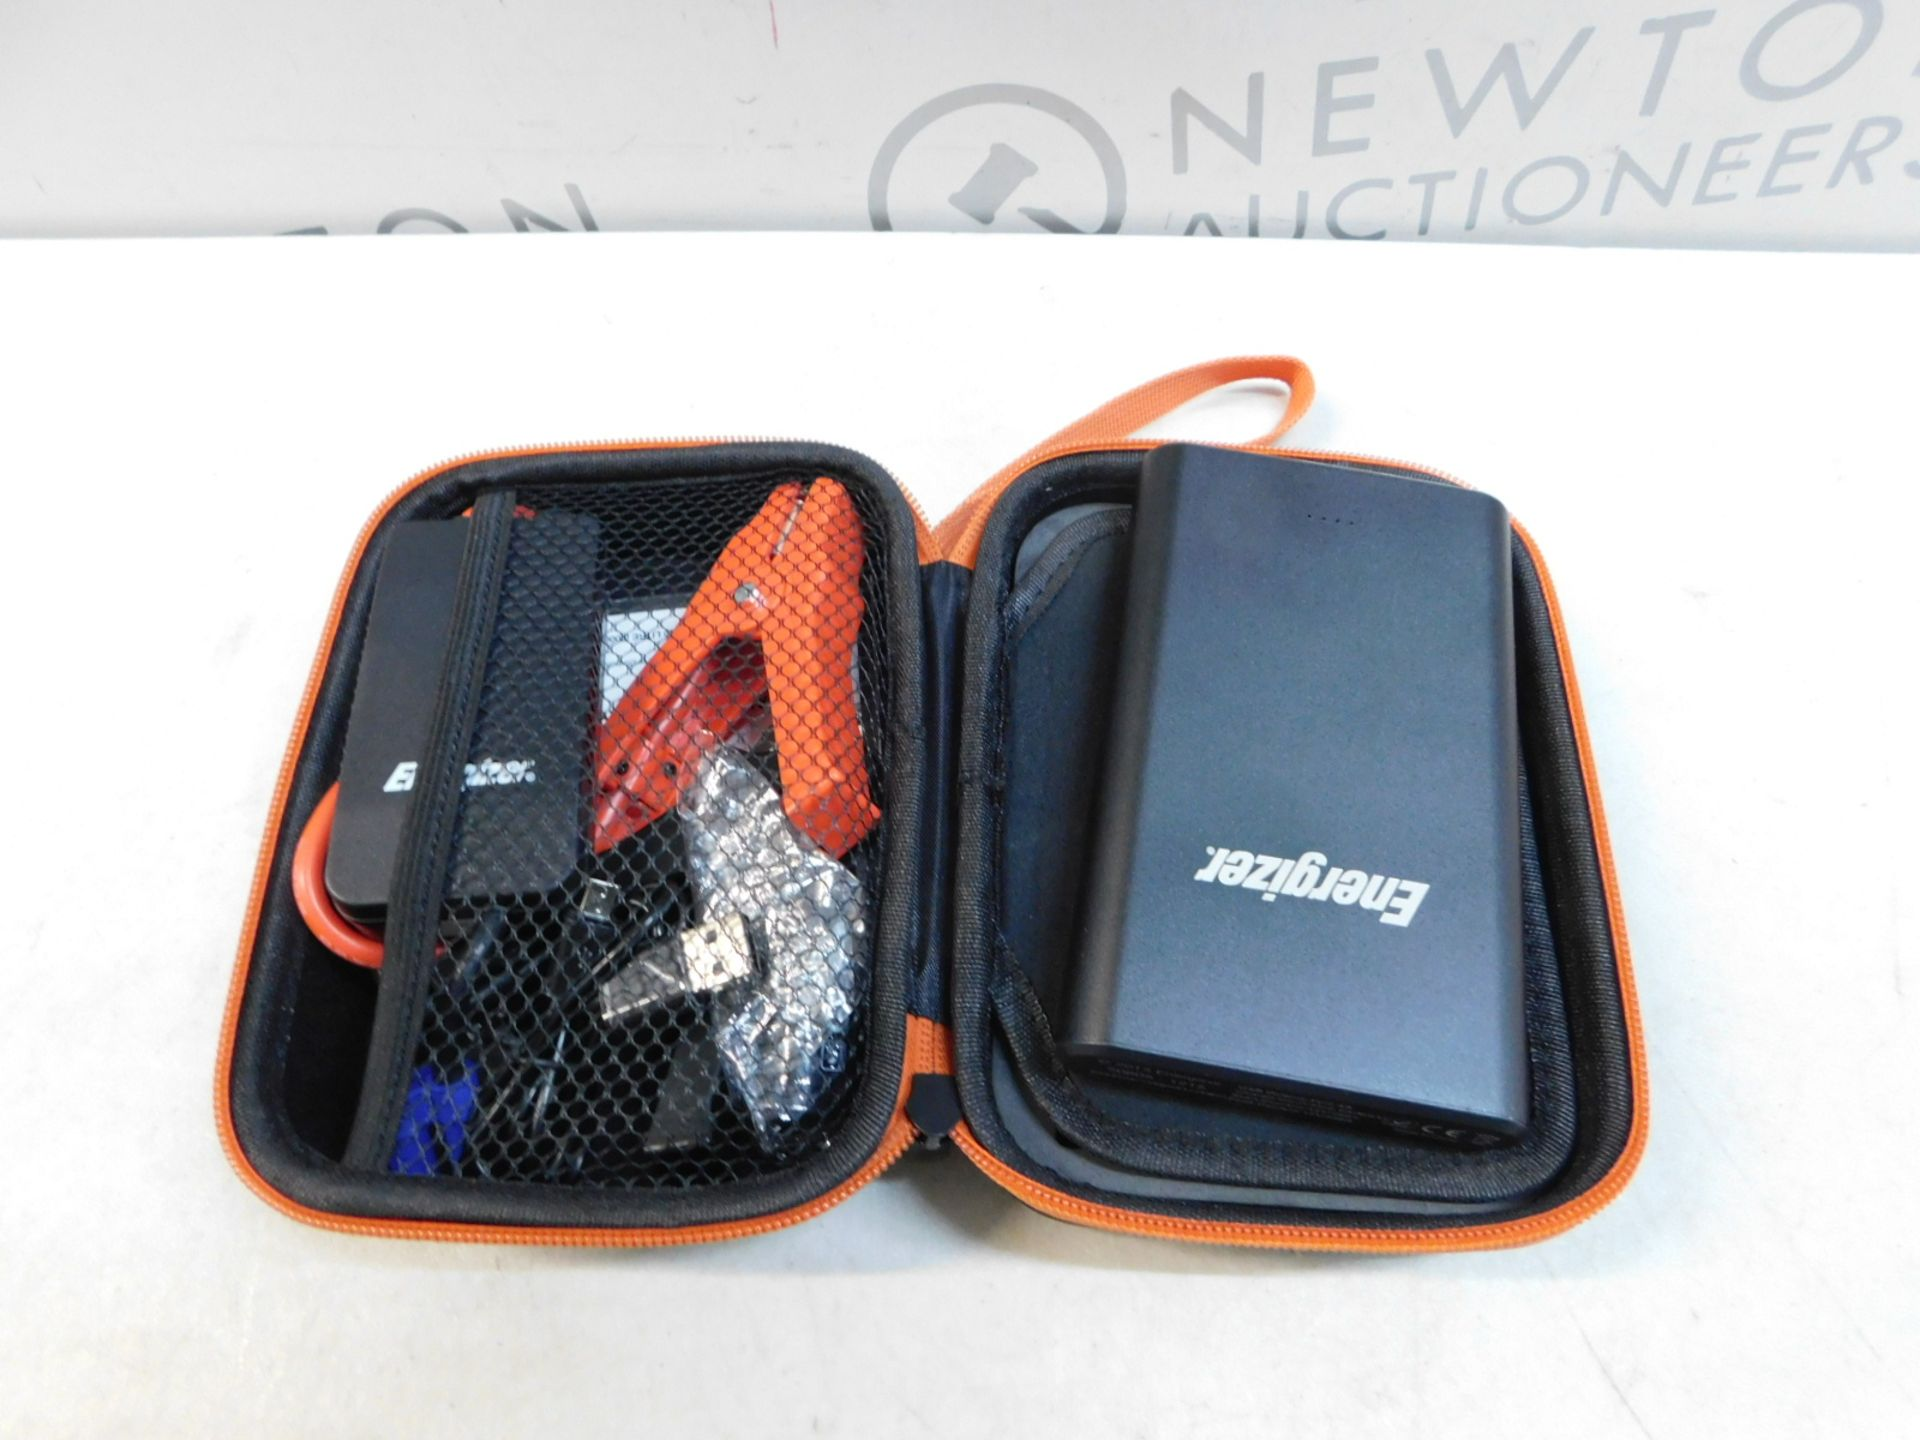 Lot 149 - 1 ENERGIZER LITHIUM-POLYMER CAR JUMP STARTER 7500MAH WITH CARRIER CASE RRP £89.99